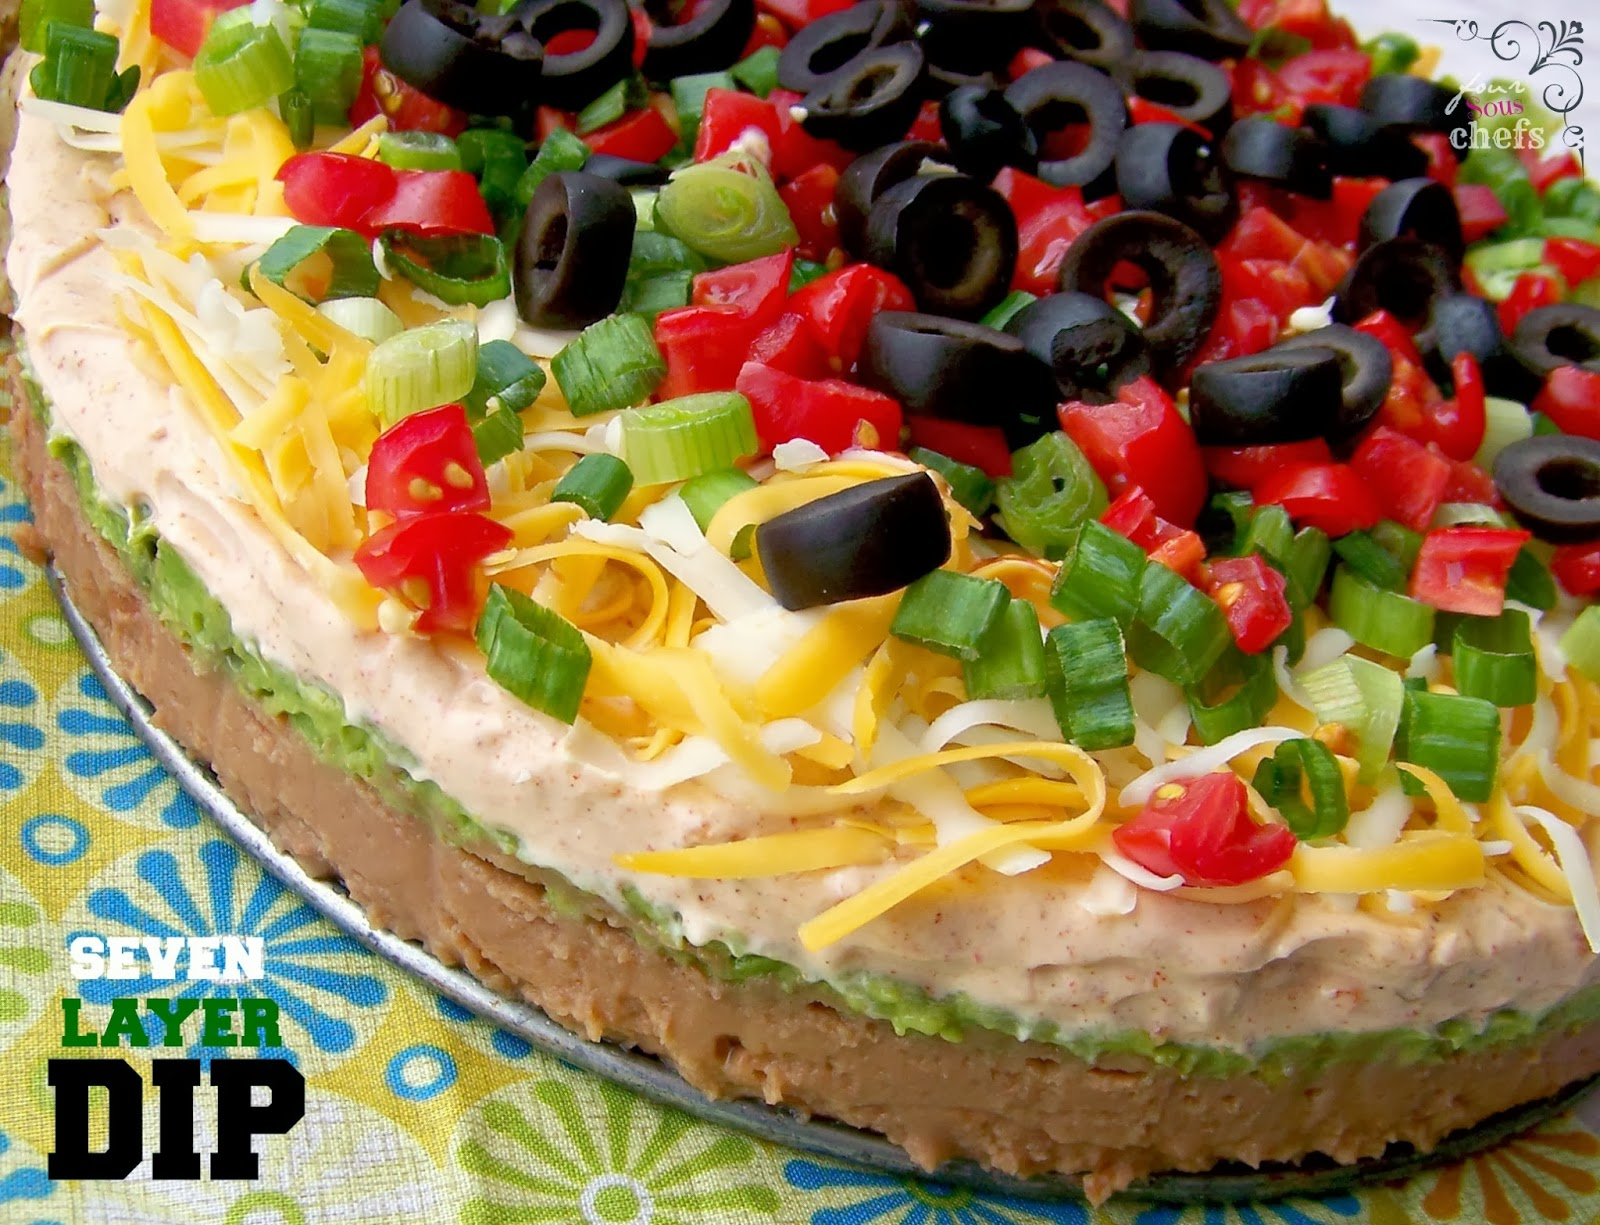 dip class i c from a can 7 layer dip seven layer cook i es seven layer ...